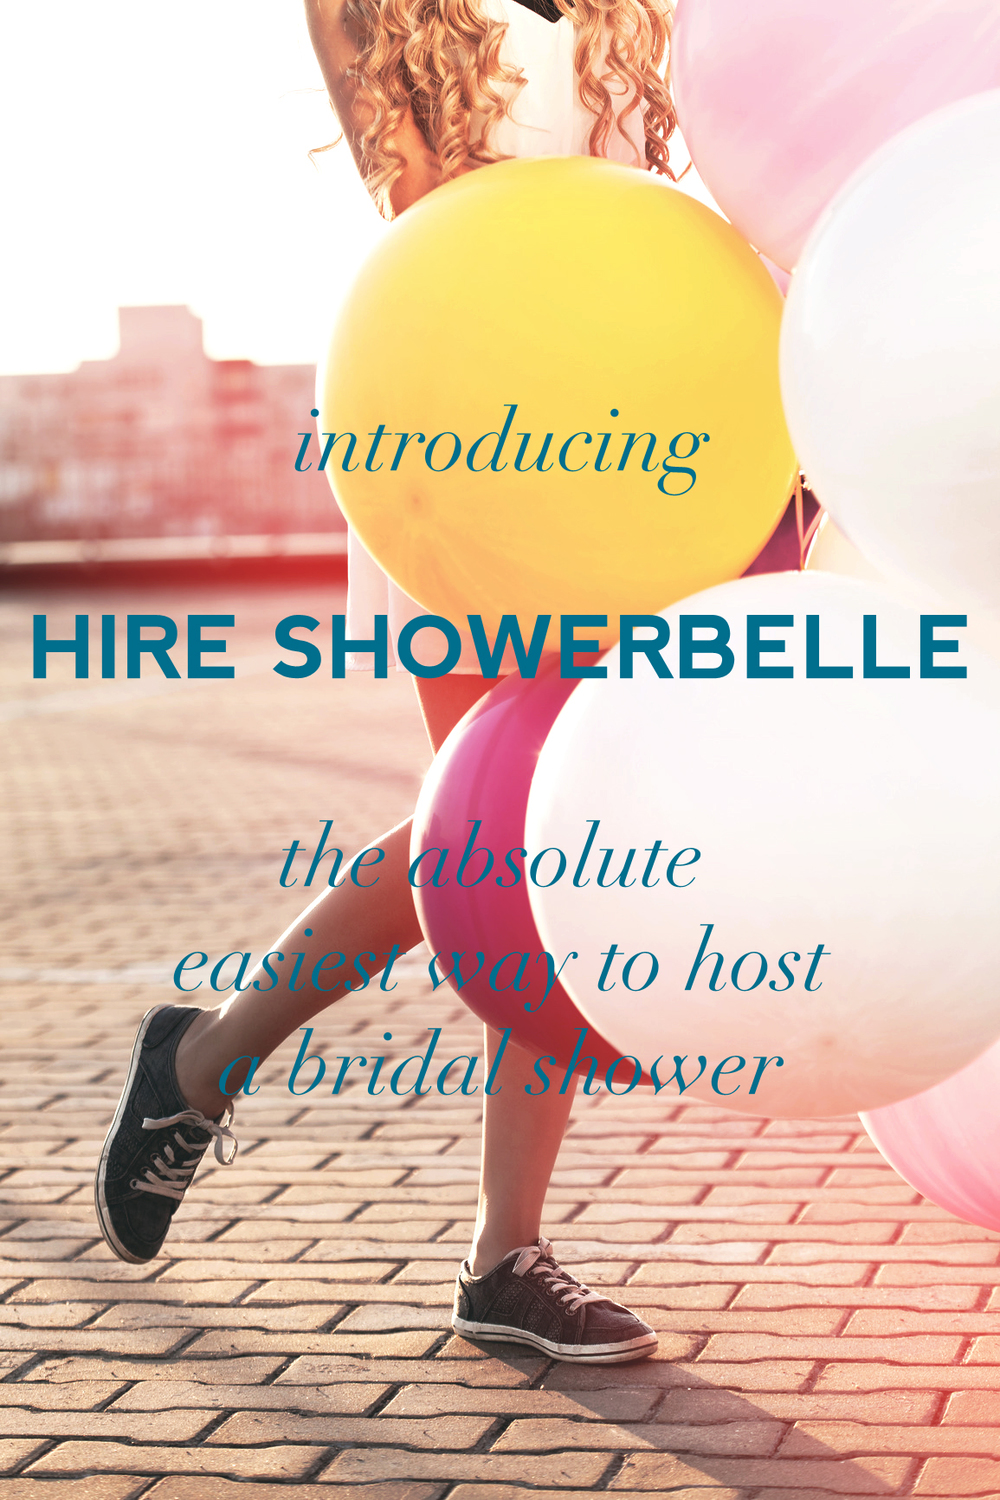 Showerbelle design and coordination services